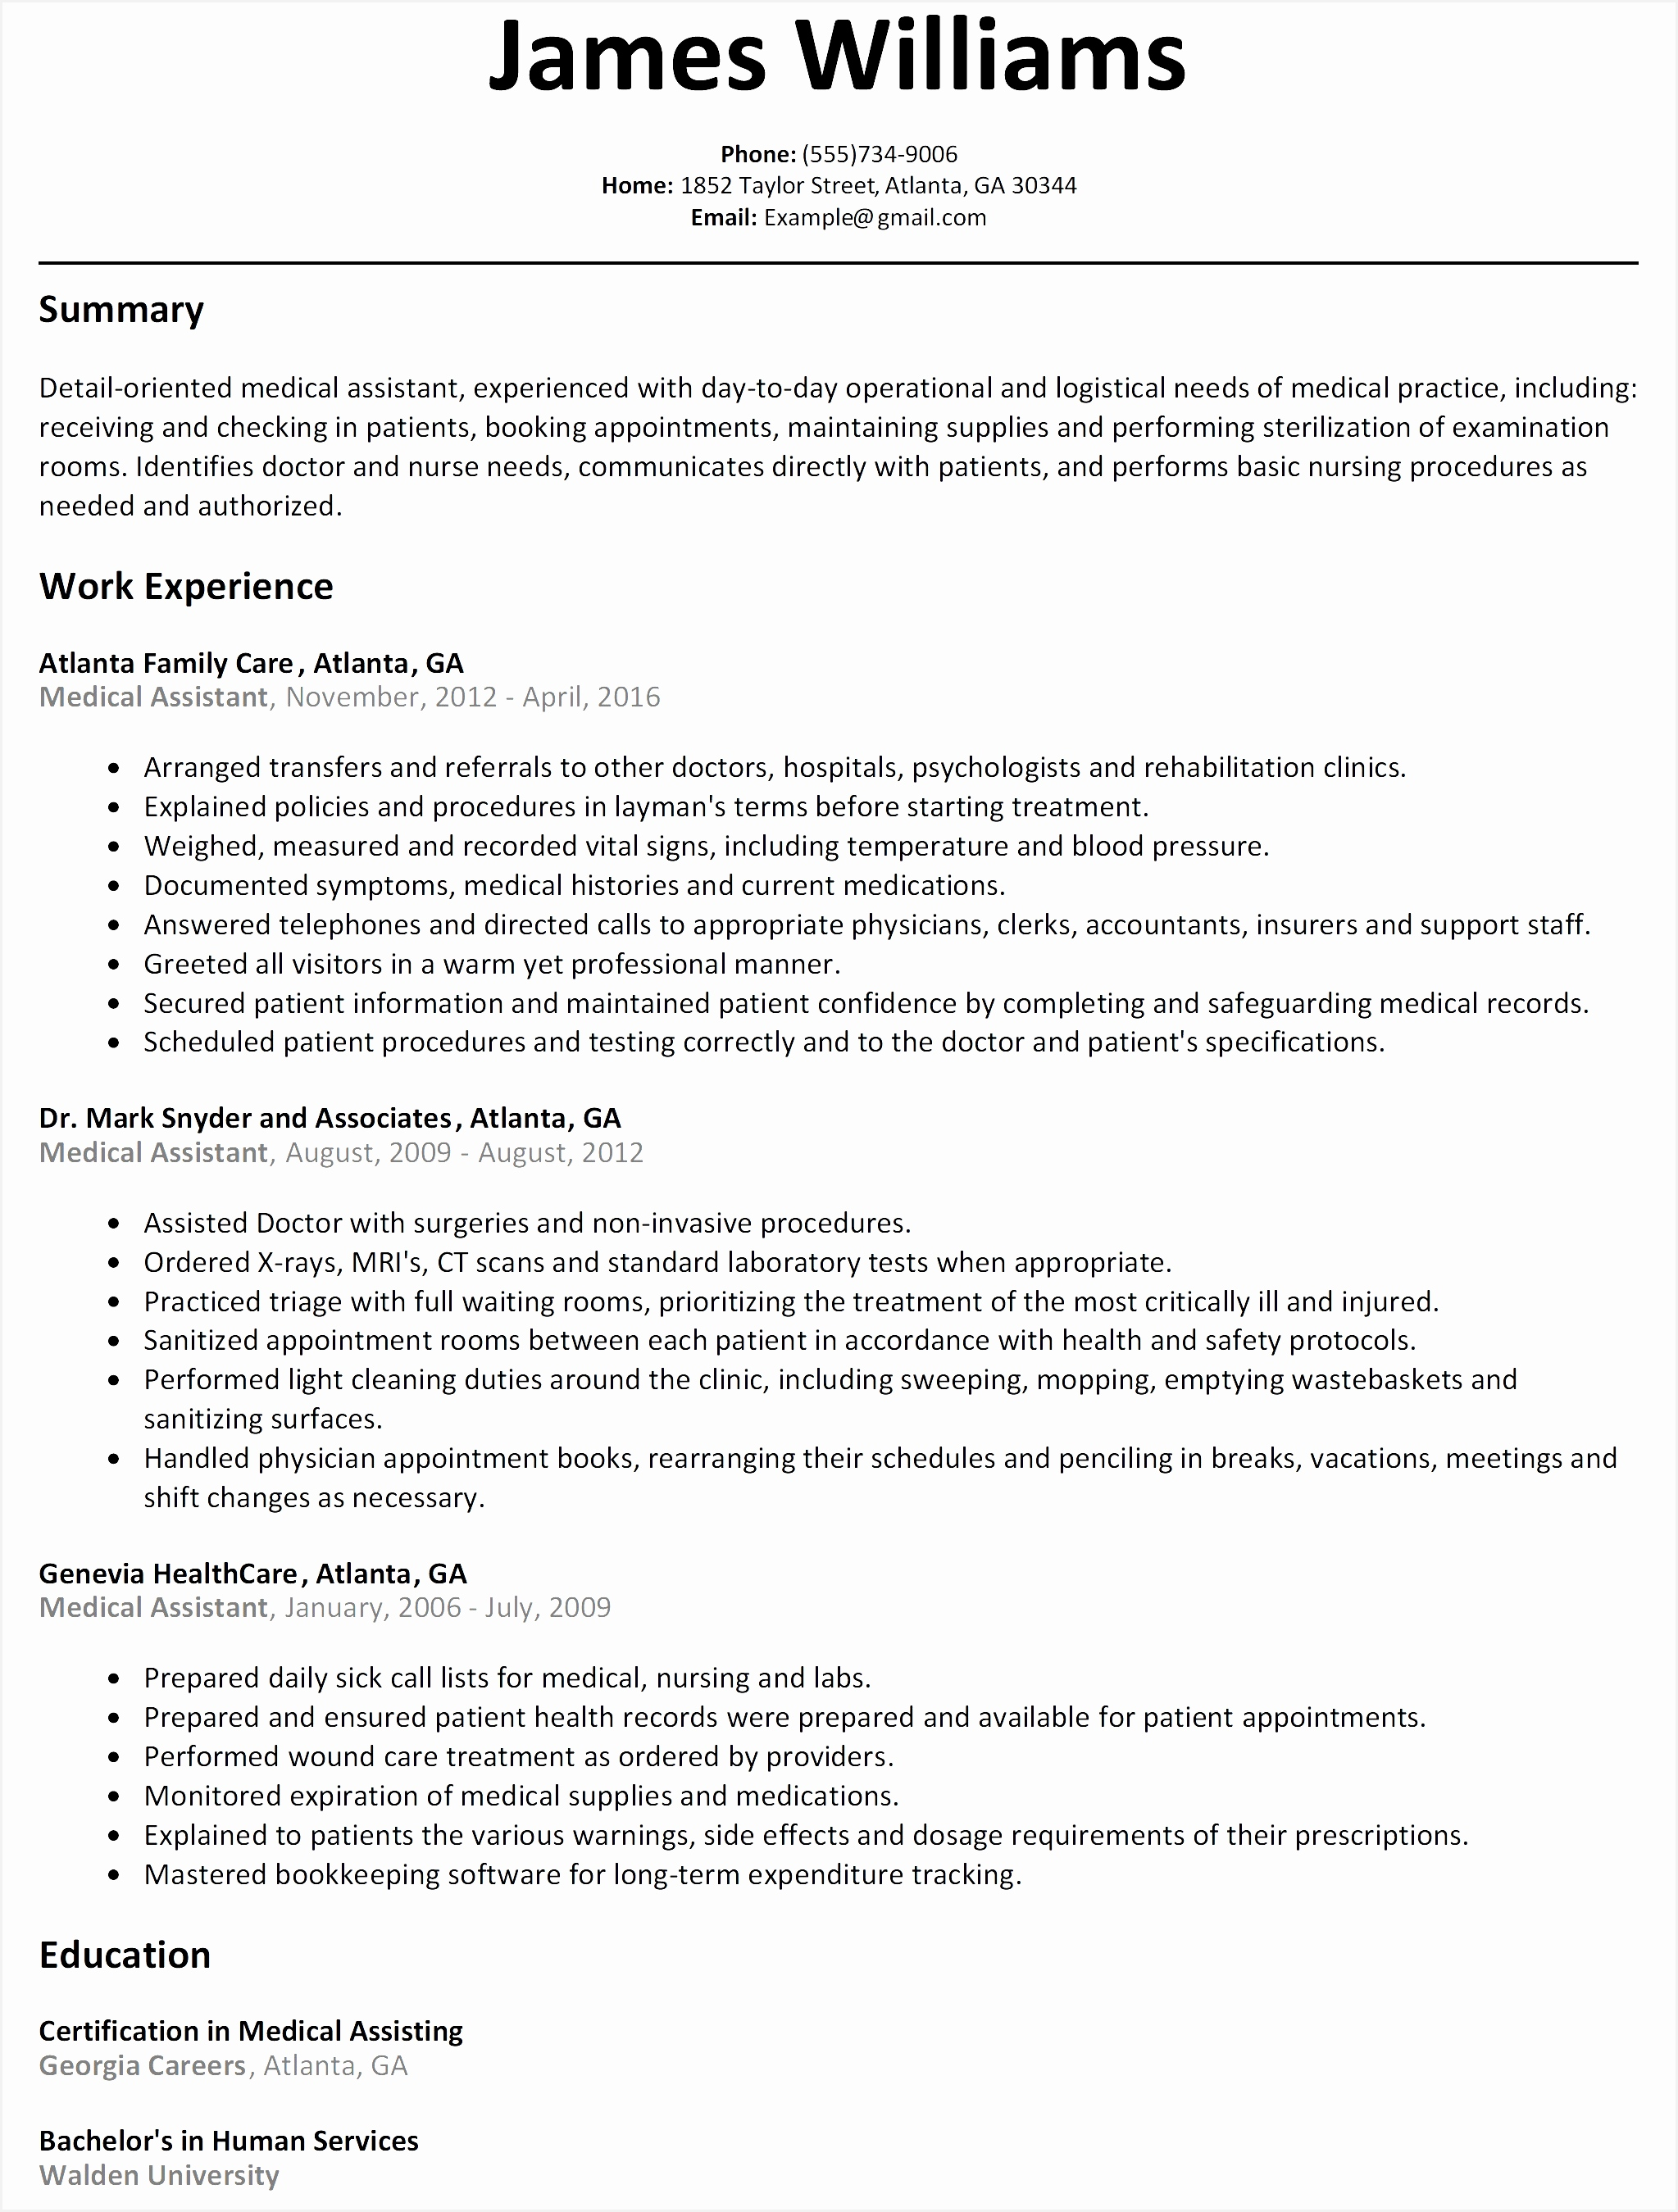 Microsoft Word Resume Template Free Unique Resume Template Free Word New Od Specialist Sample Resume Resume26992047